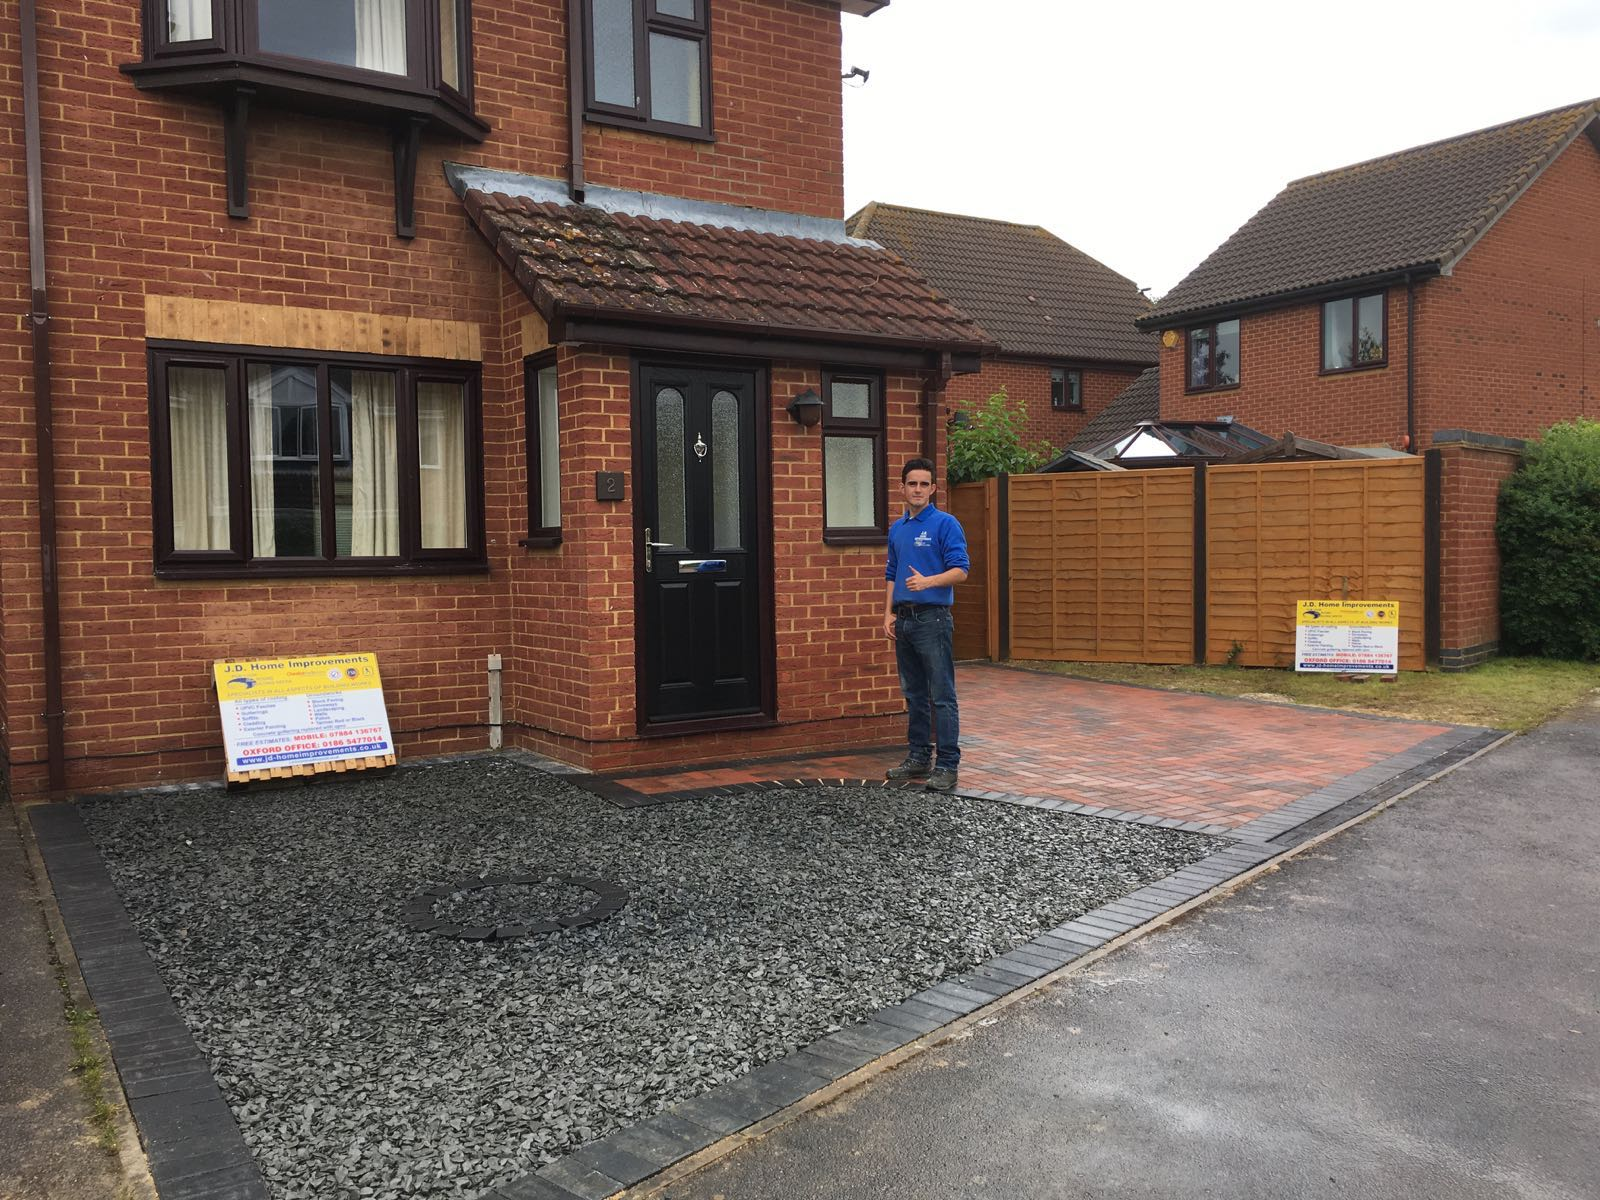 recent project for driveways in Keynsham - image shows a block paving driveway